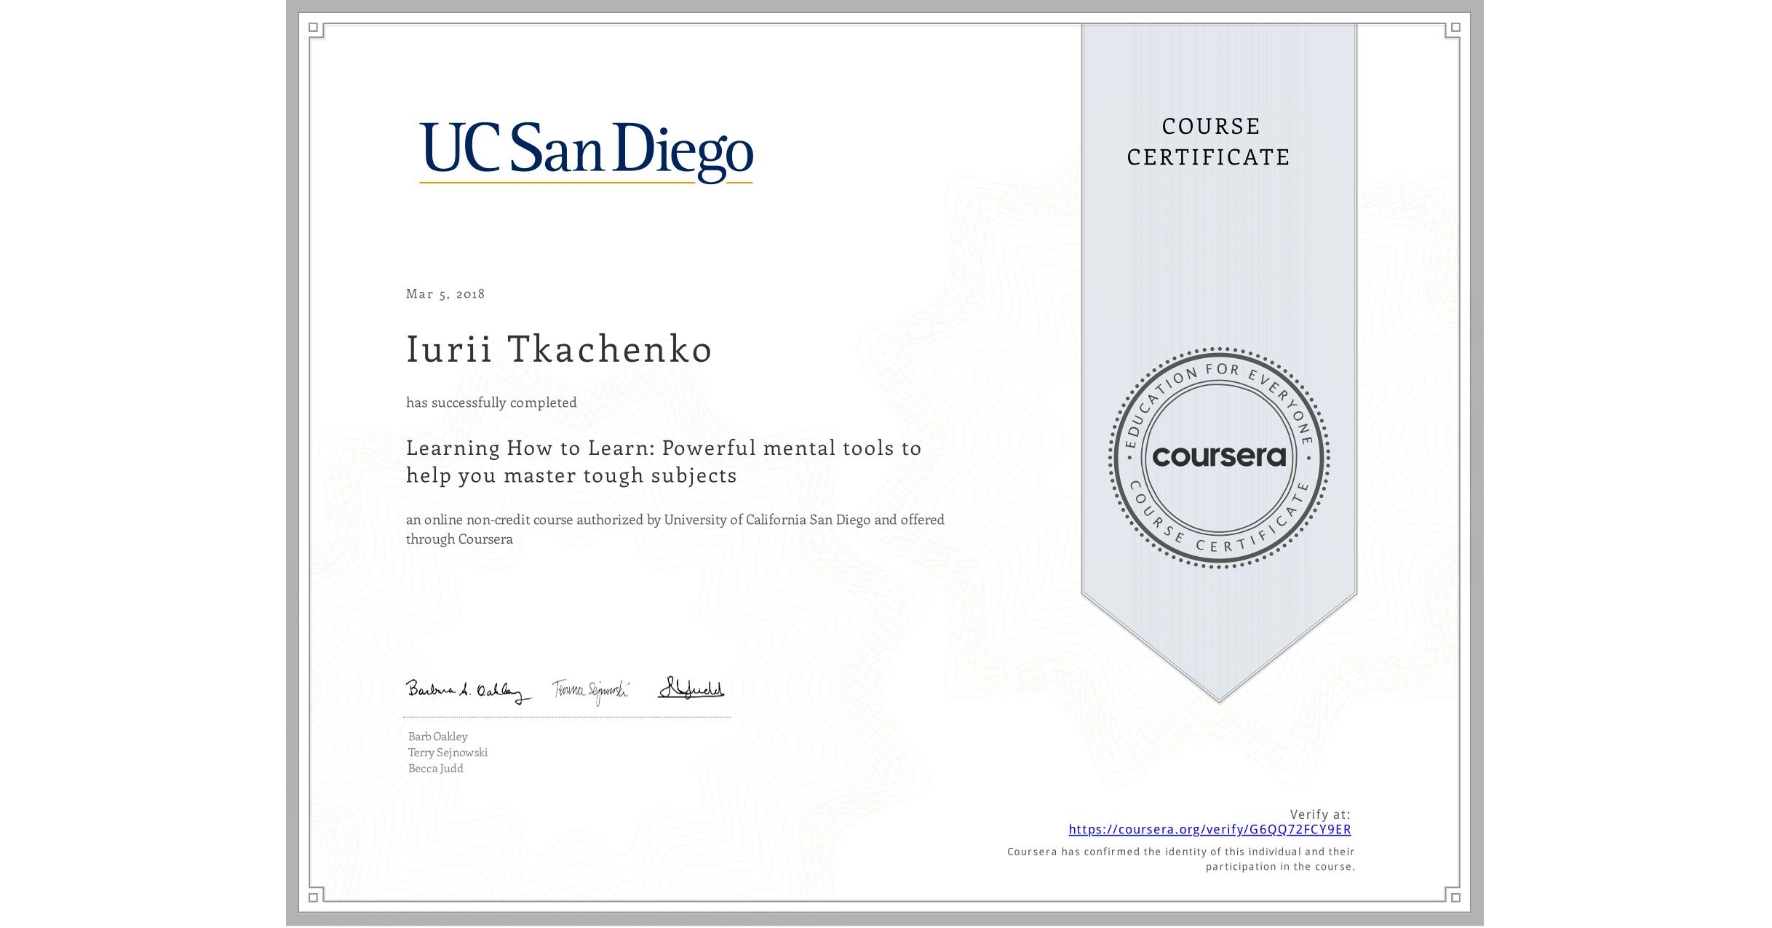 View certificate for Iurii Tkachenko, Learning How to Learn: Powerful mental tools to help you master tough subjects, an online non-credit course authorized by McMaster University & University of California San Diego and offered through Coursera